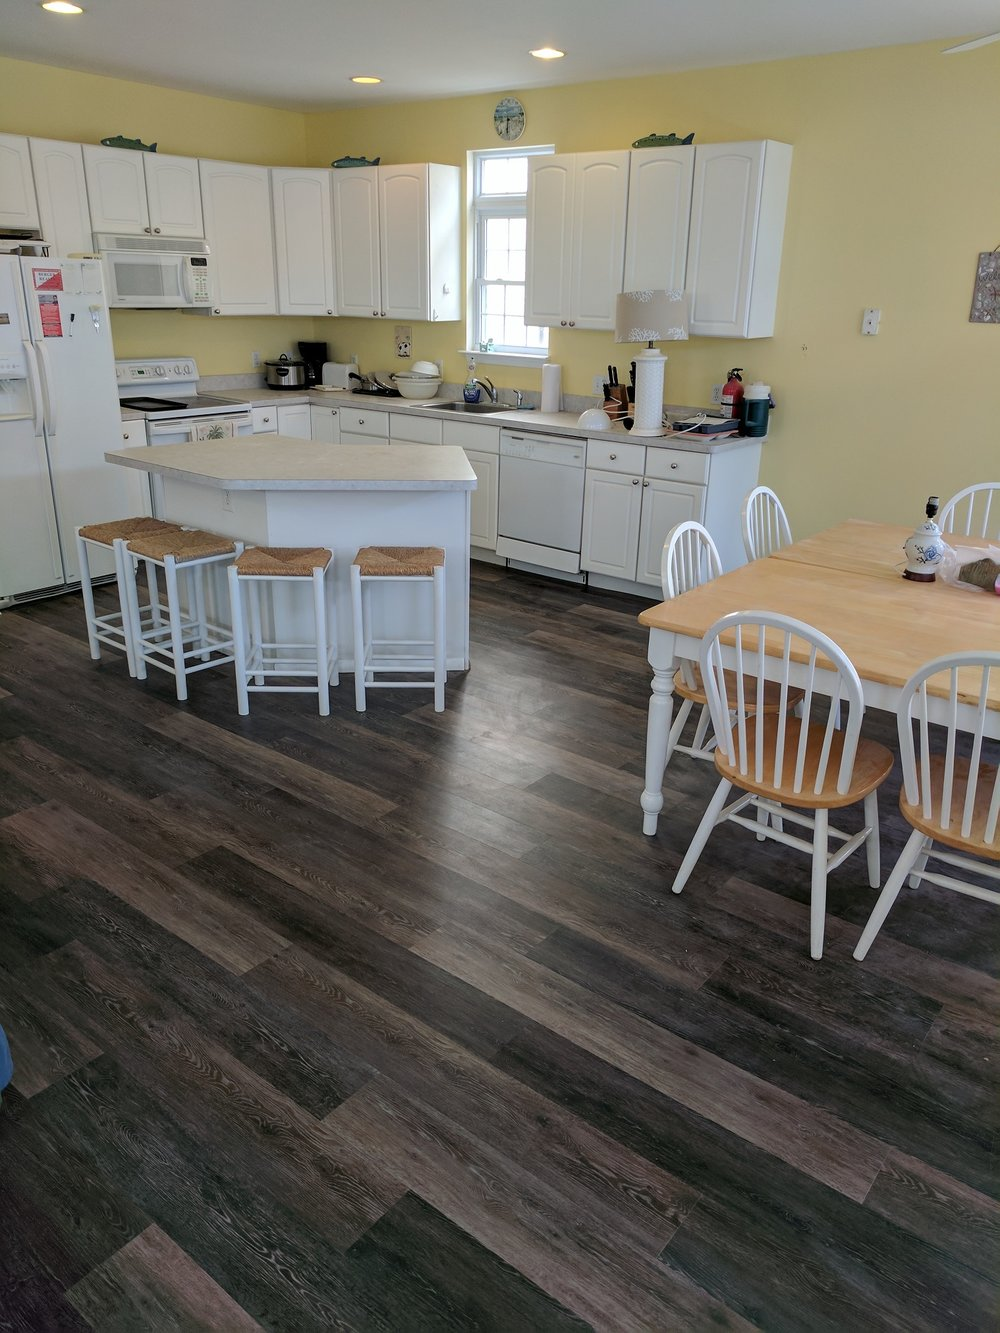 Ocean-City-Beach-House-Kitchen-2-LVT.jpg